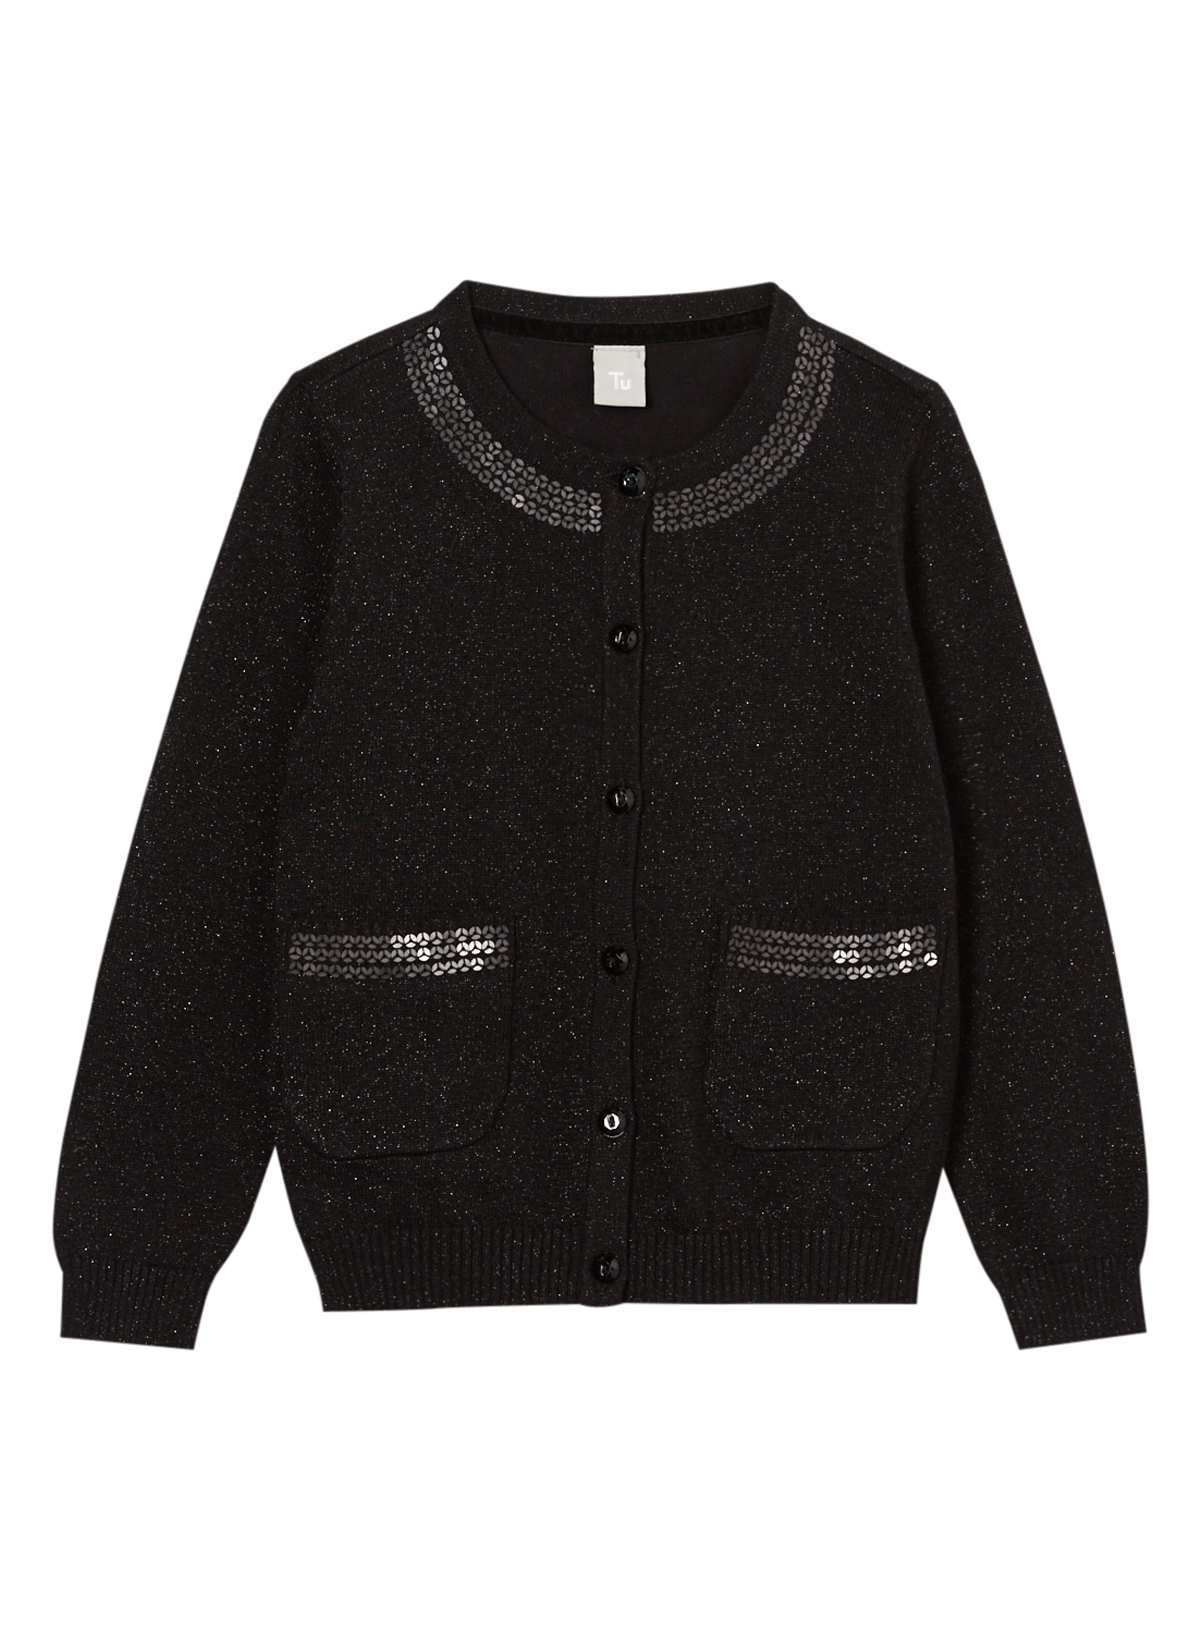 All Girl's Clothing Girls Black Lurex And Sequin Cardigan (9 ...